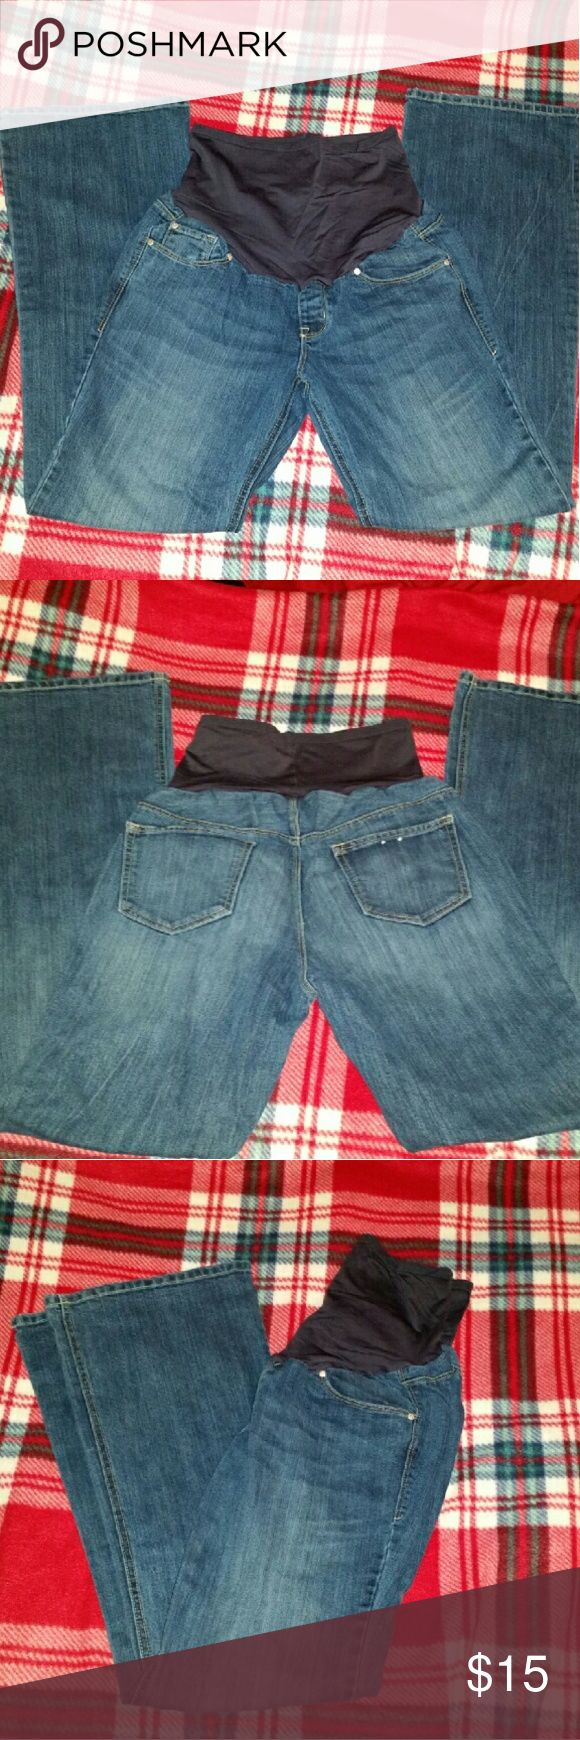 Old Navy Maternity jeans 10 regular Been worn a couple times. In excellent condition. These are size 10 regular. They have the flare/boot leg bottoms. I bundle and take reasonable offers :) Check out all my other Maternity items. Old Navy Maternity  Jeans